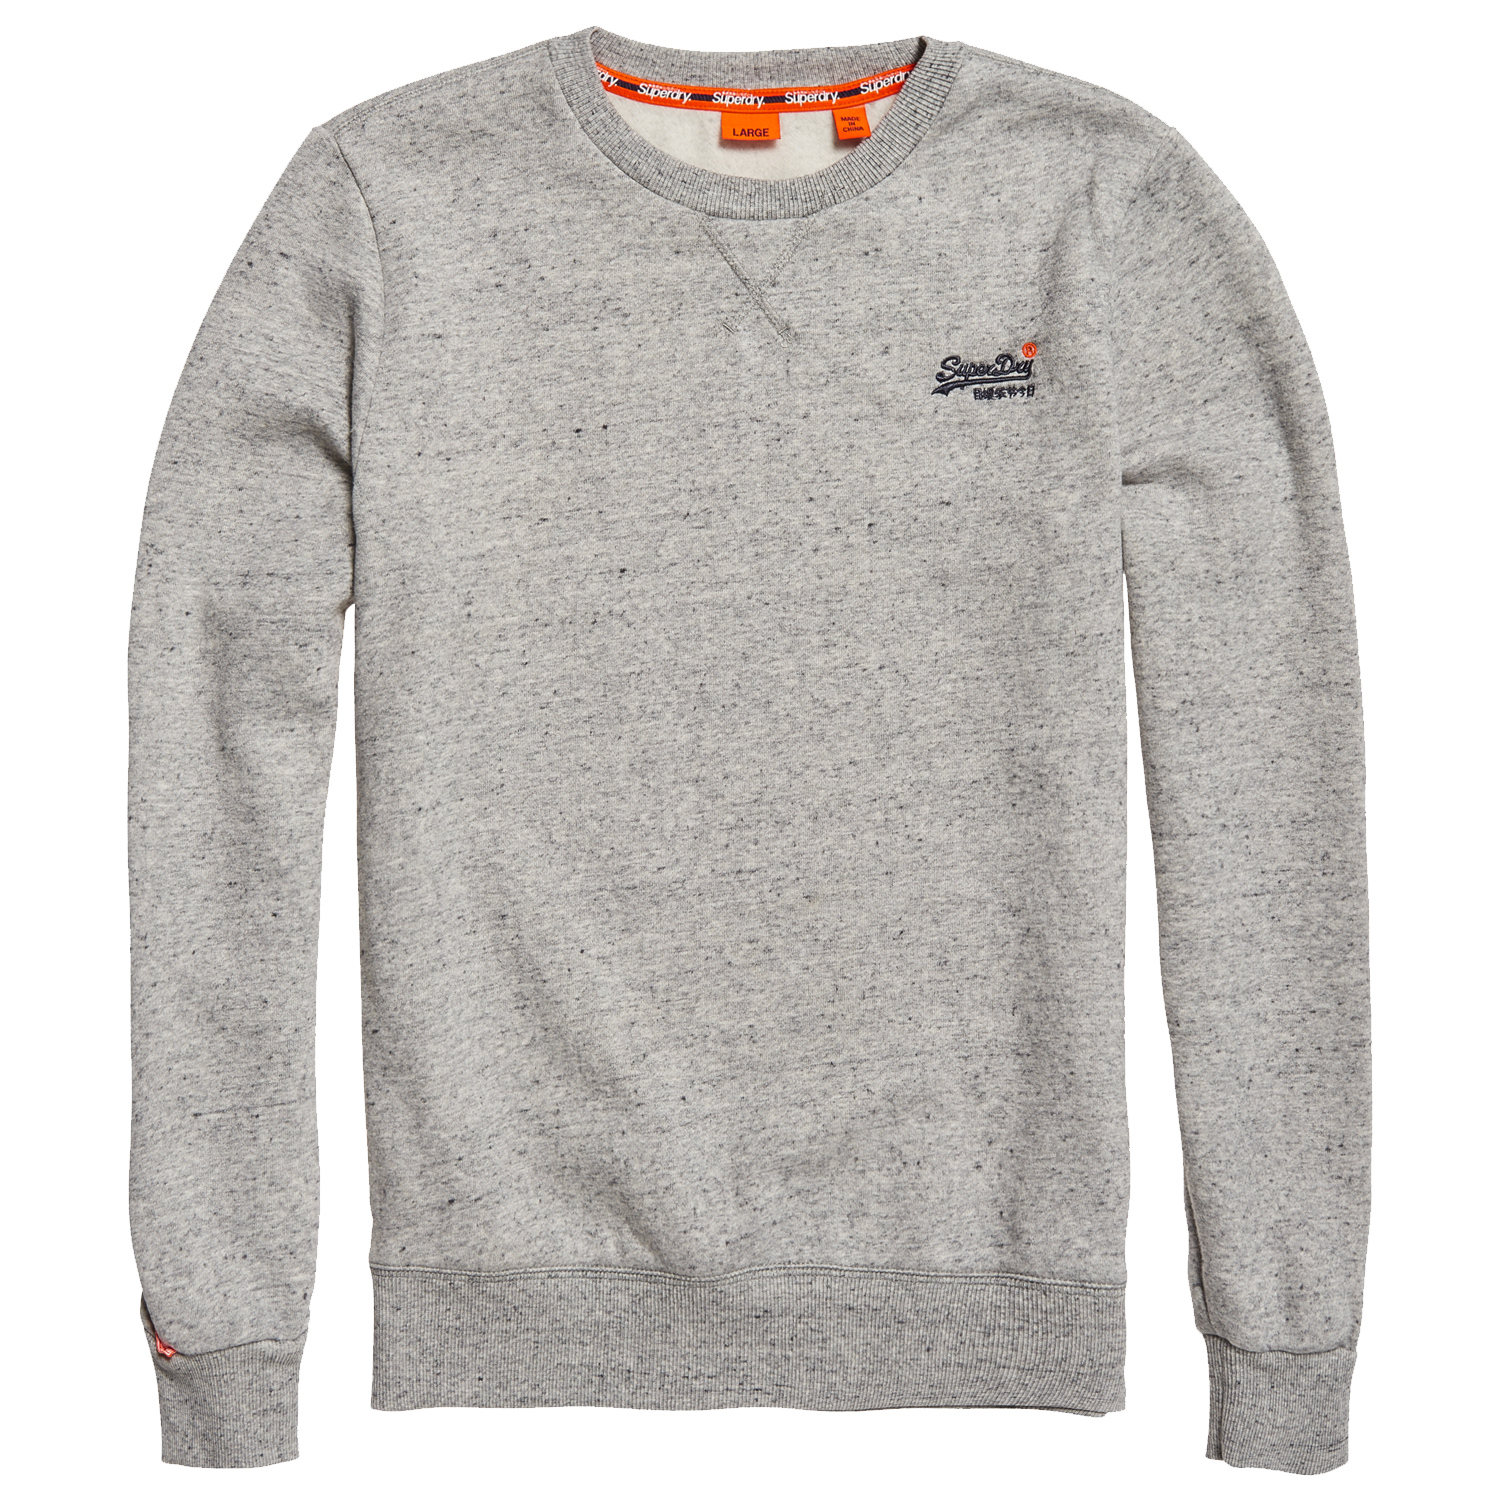 more photos 11920 c5f5f Superdry Orange Label Herren Pullover | Sport Lipp Onlineshop